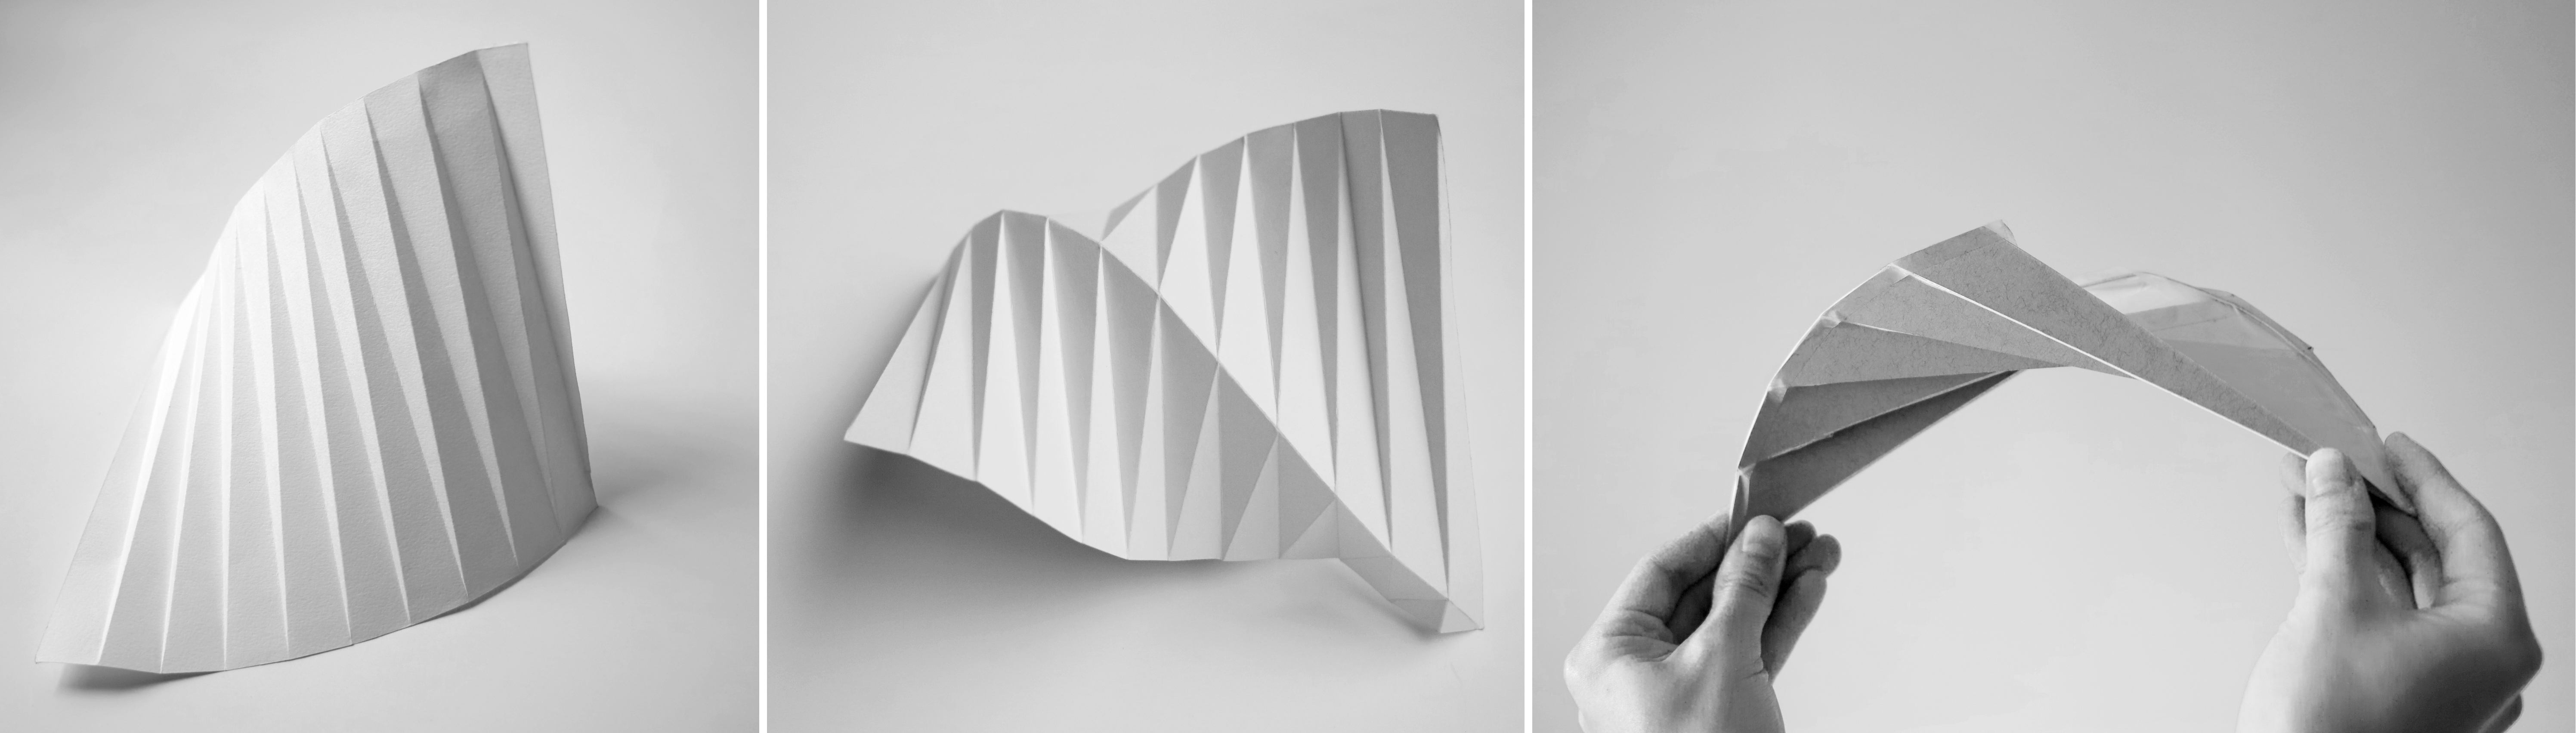 Folded Shell Structure By Liane Ee Digital Fabrication